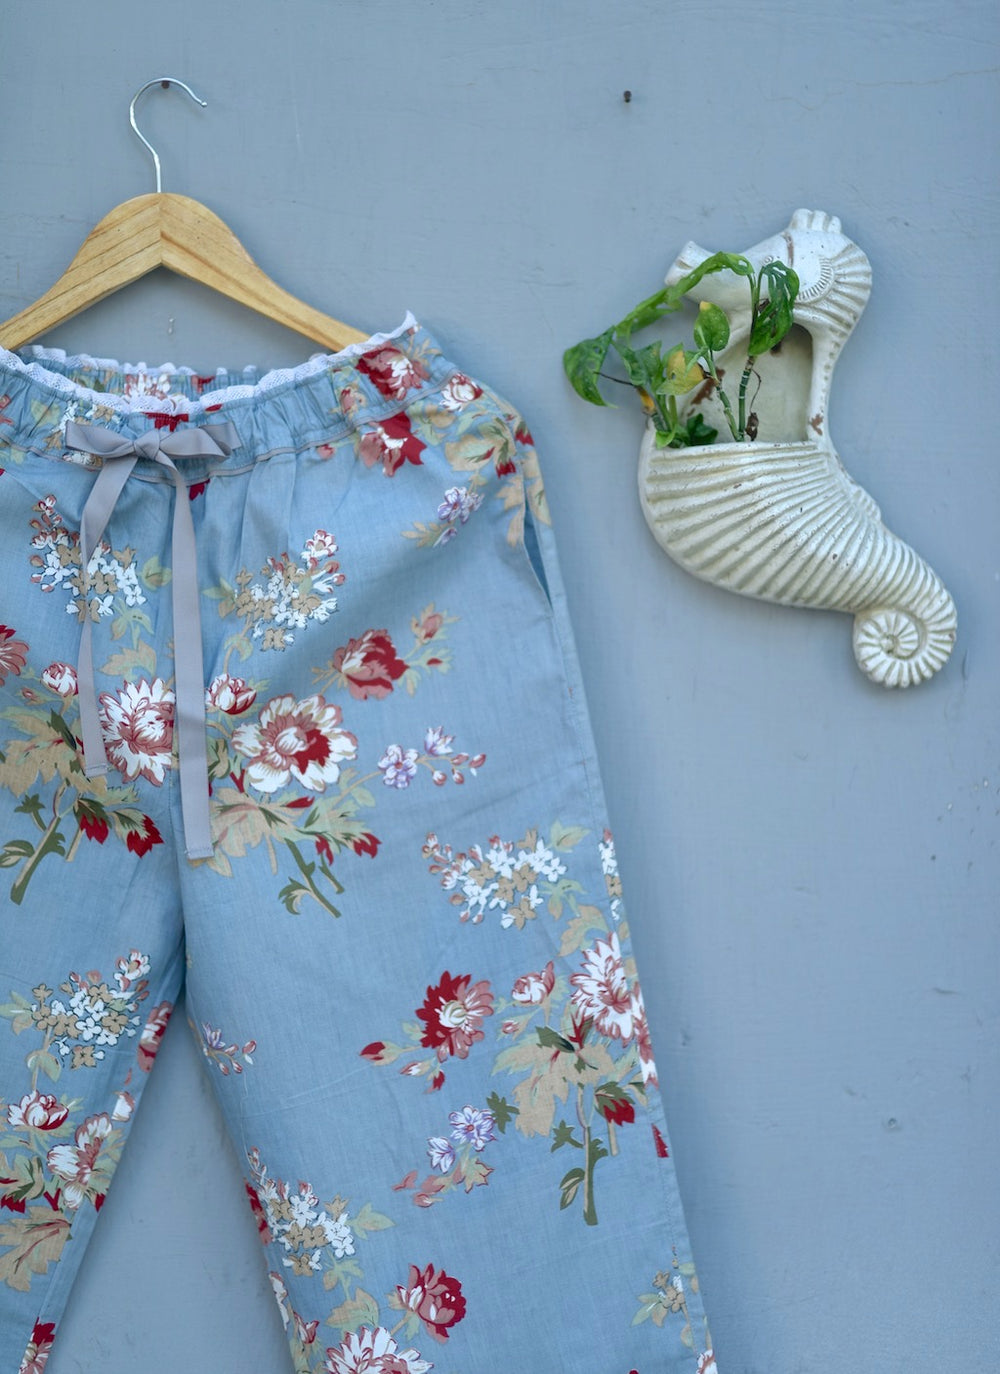 Kiri Handmade Grey and Maroon Floral Print jammies with lace Finishing